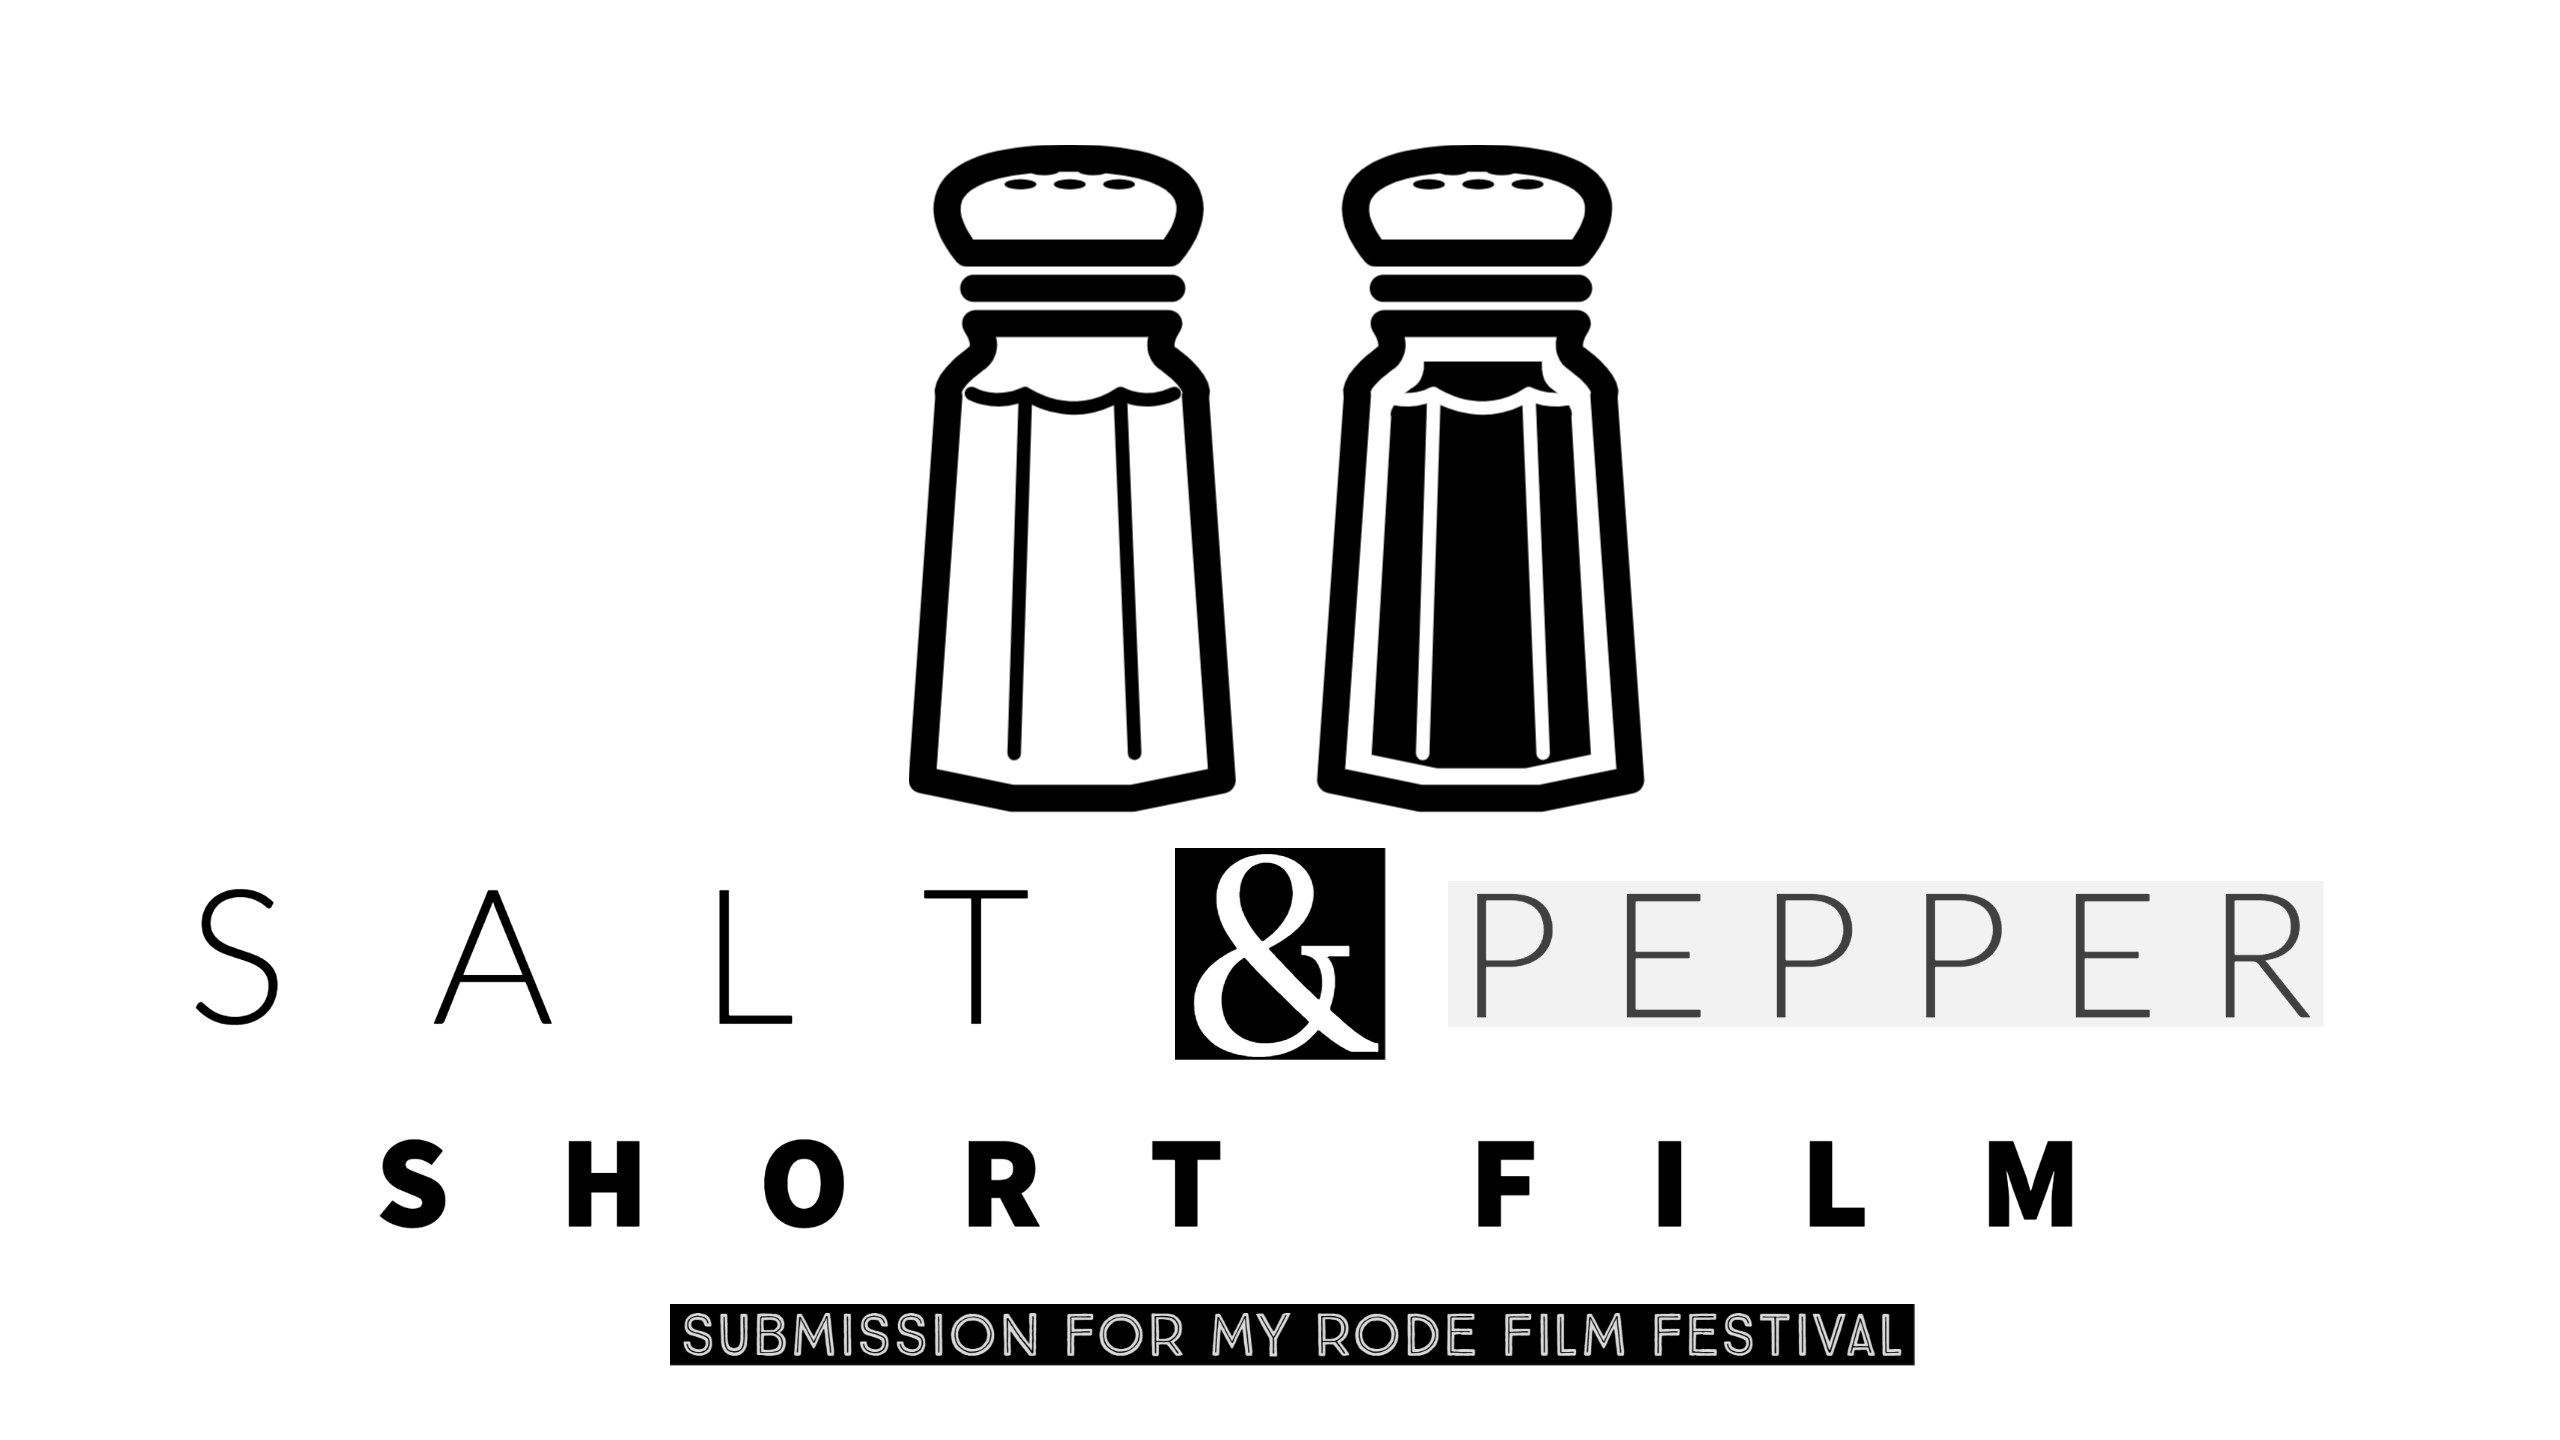 Salt & Pepper Short Film ( submission for My Rode Film Festival)